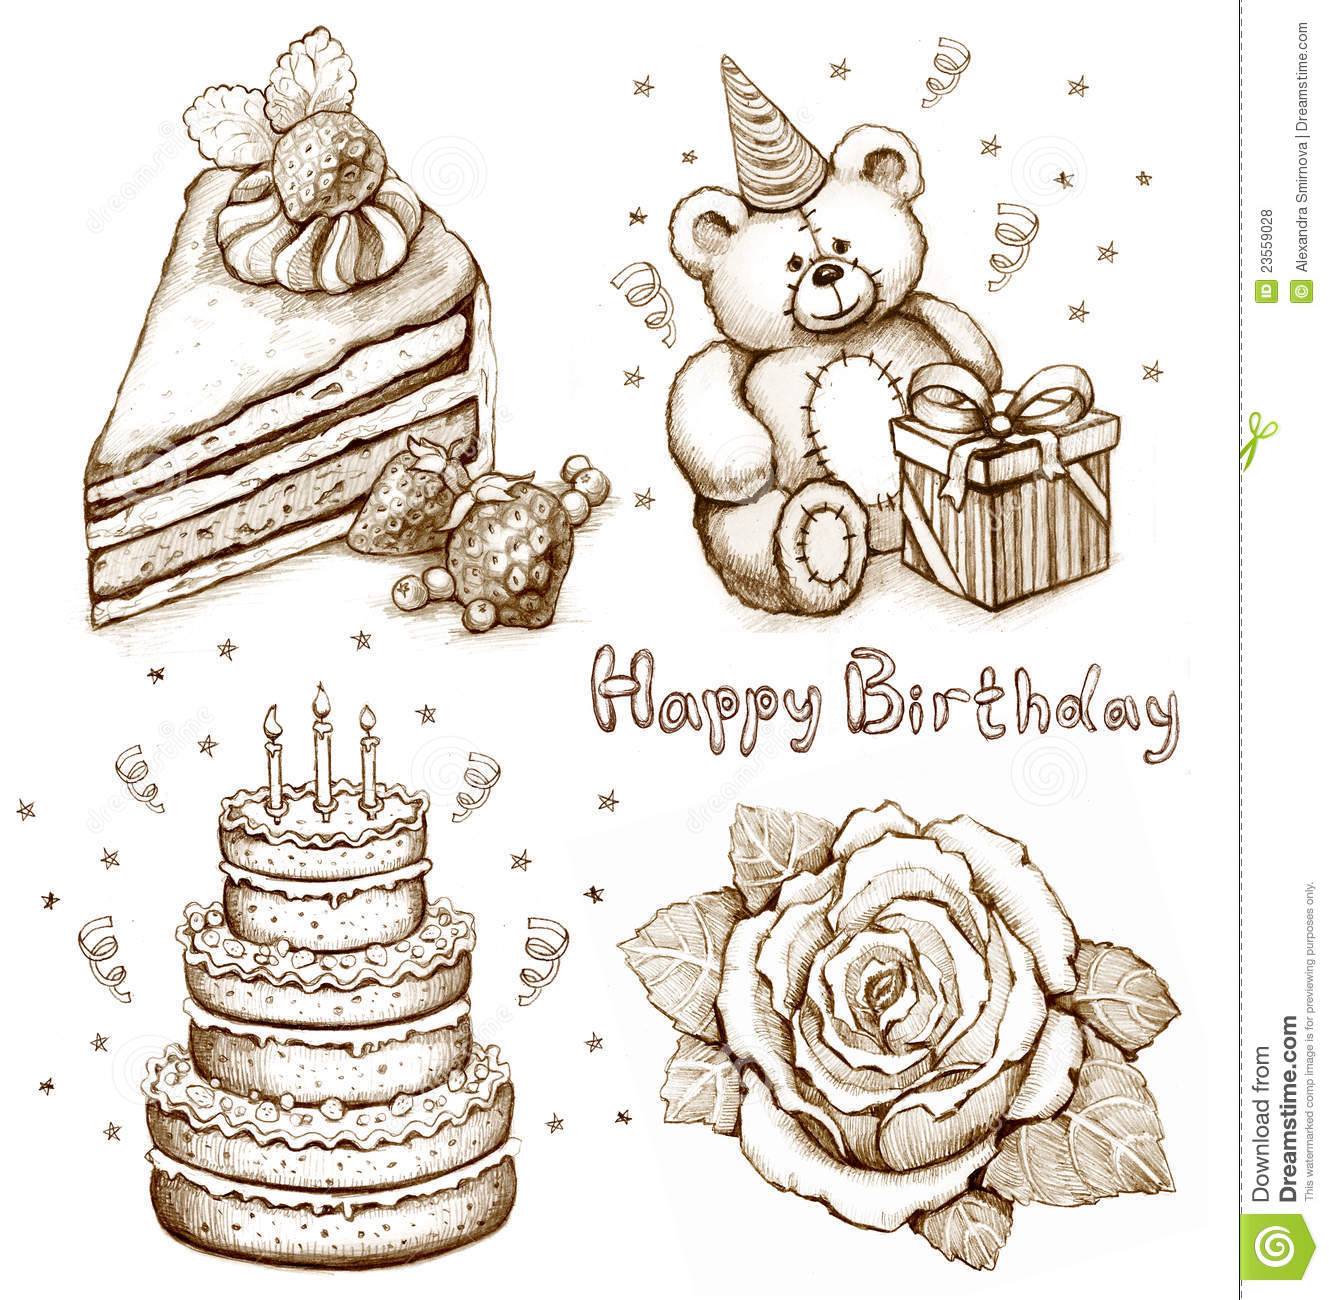 birthday cake pencil drawing ; set-birthday-illustrations-23559028